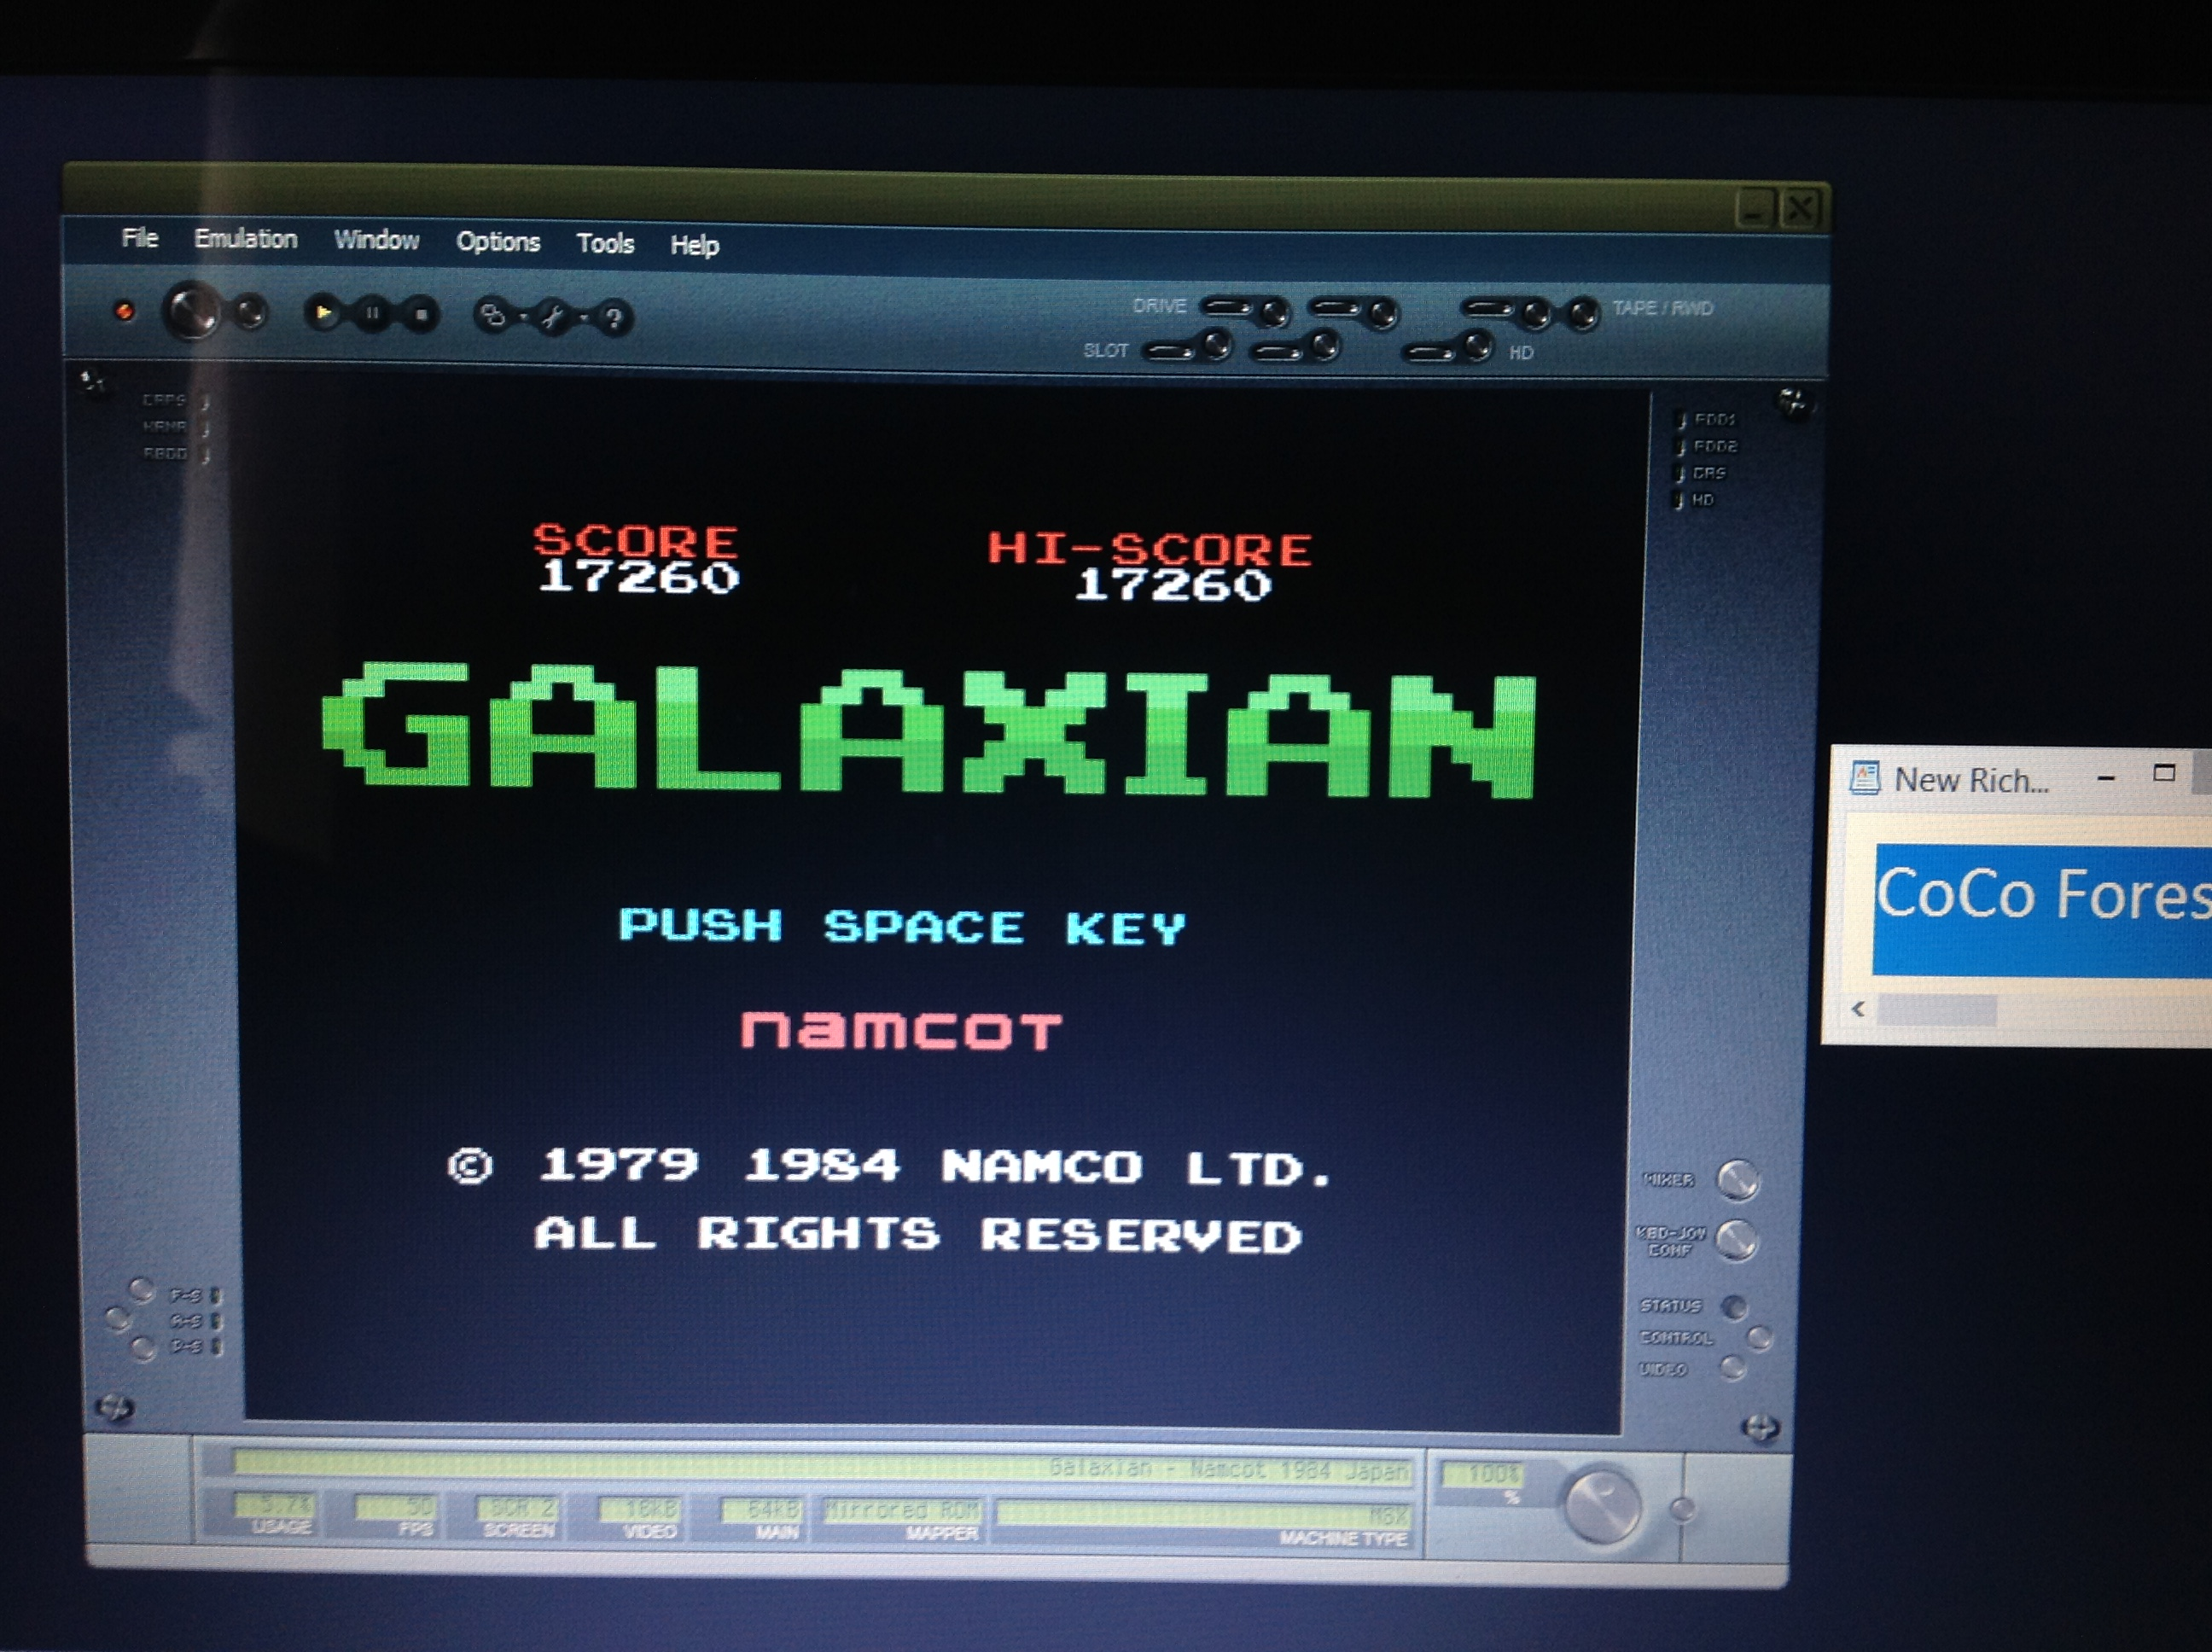 CoCoForest: Galaxian (MSX Emulated) 17,260 points on 2018-10-15 07:48:34